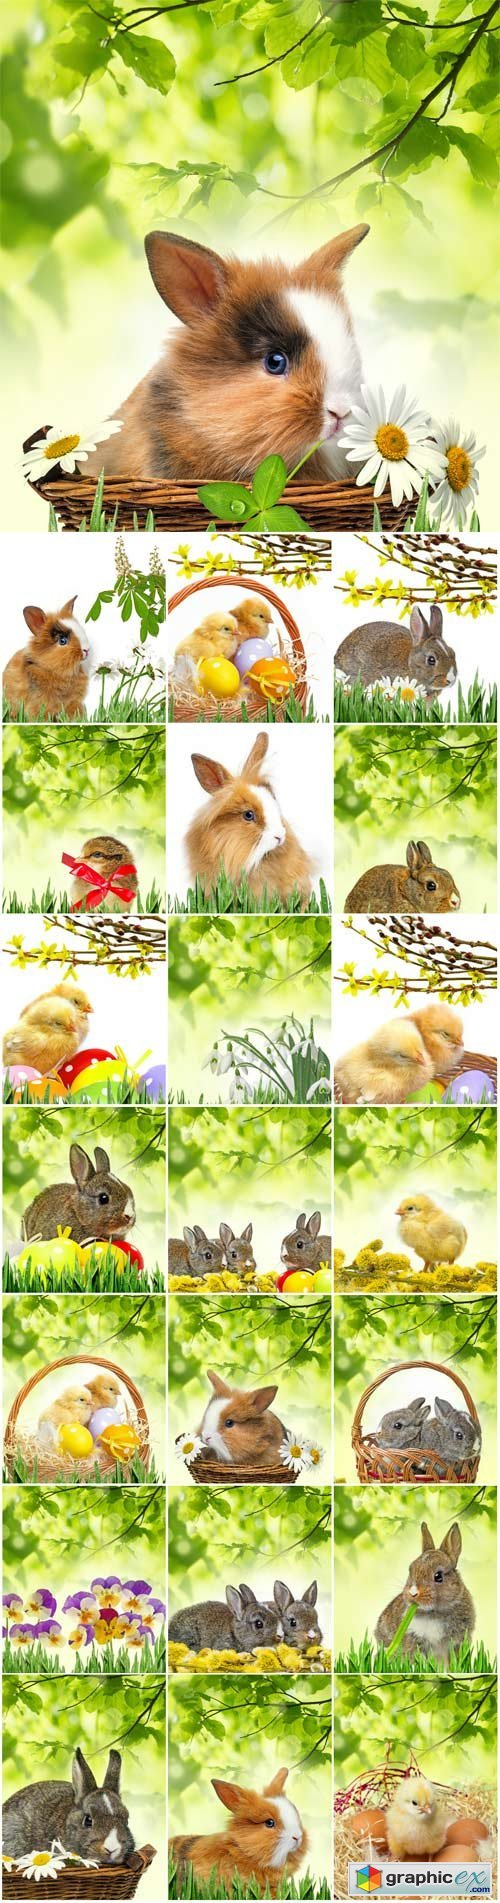 Easter bunny and chickens on a background of green leaves